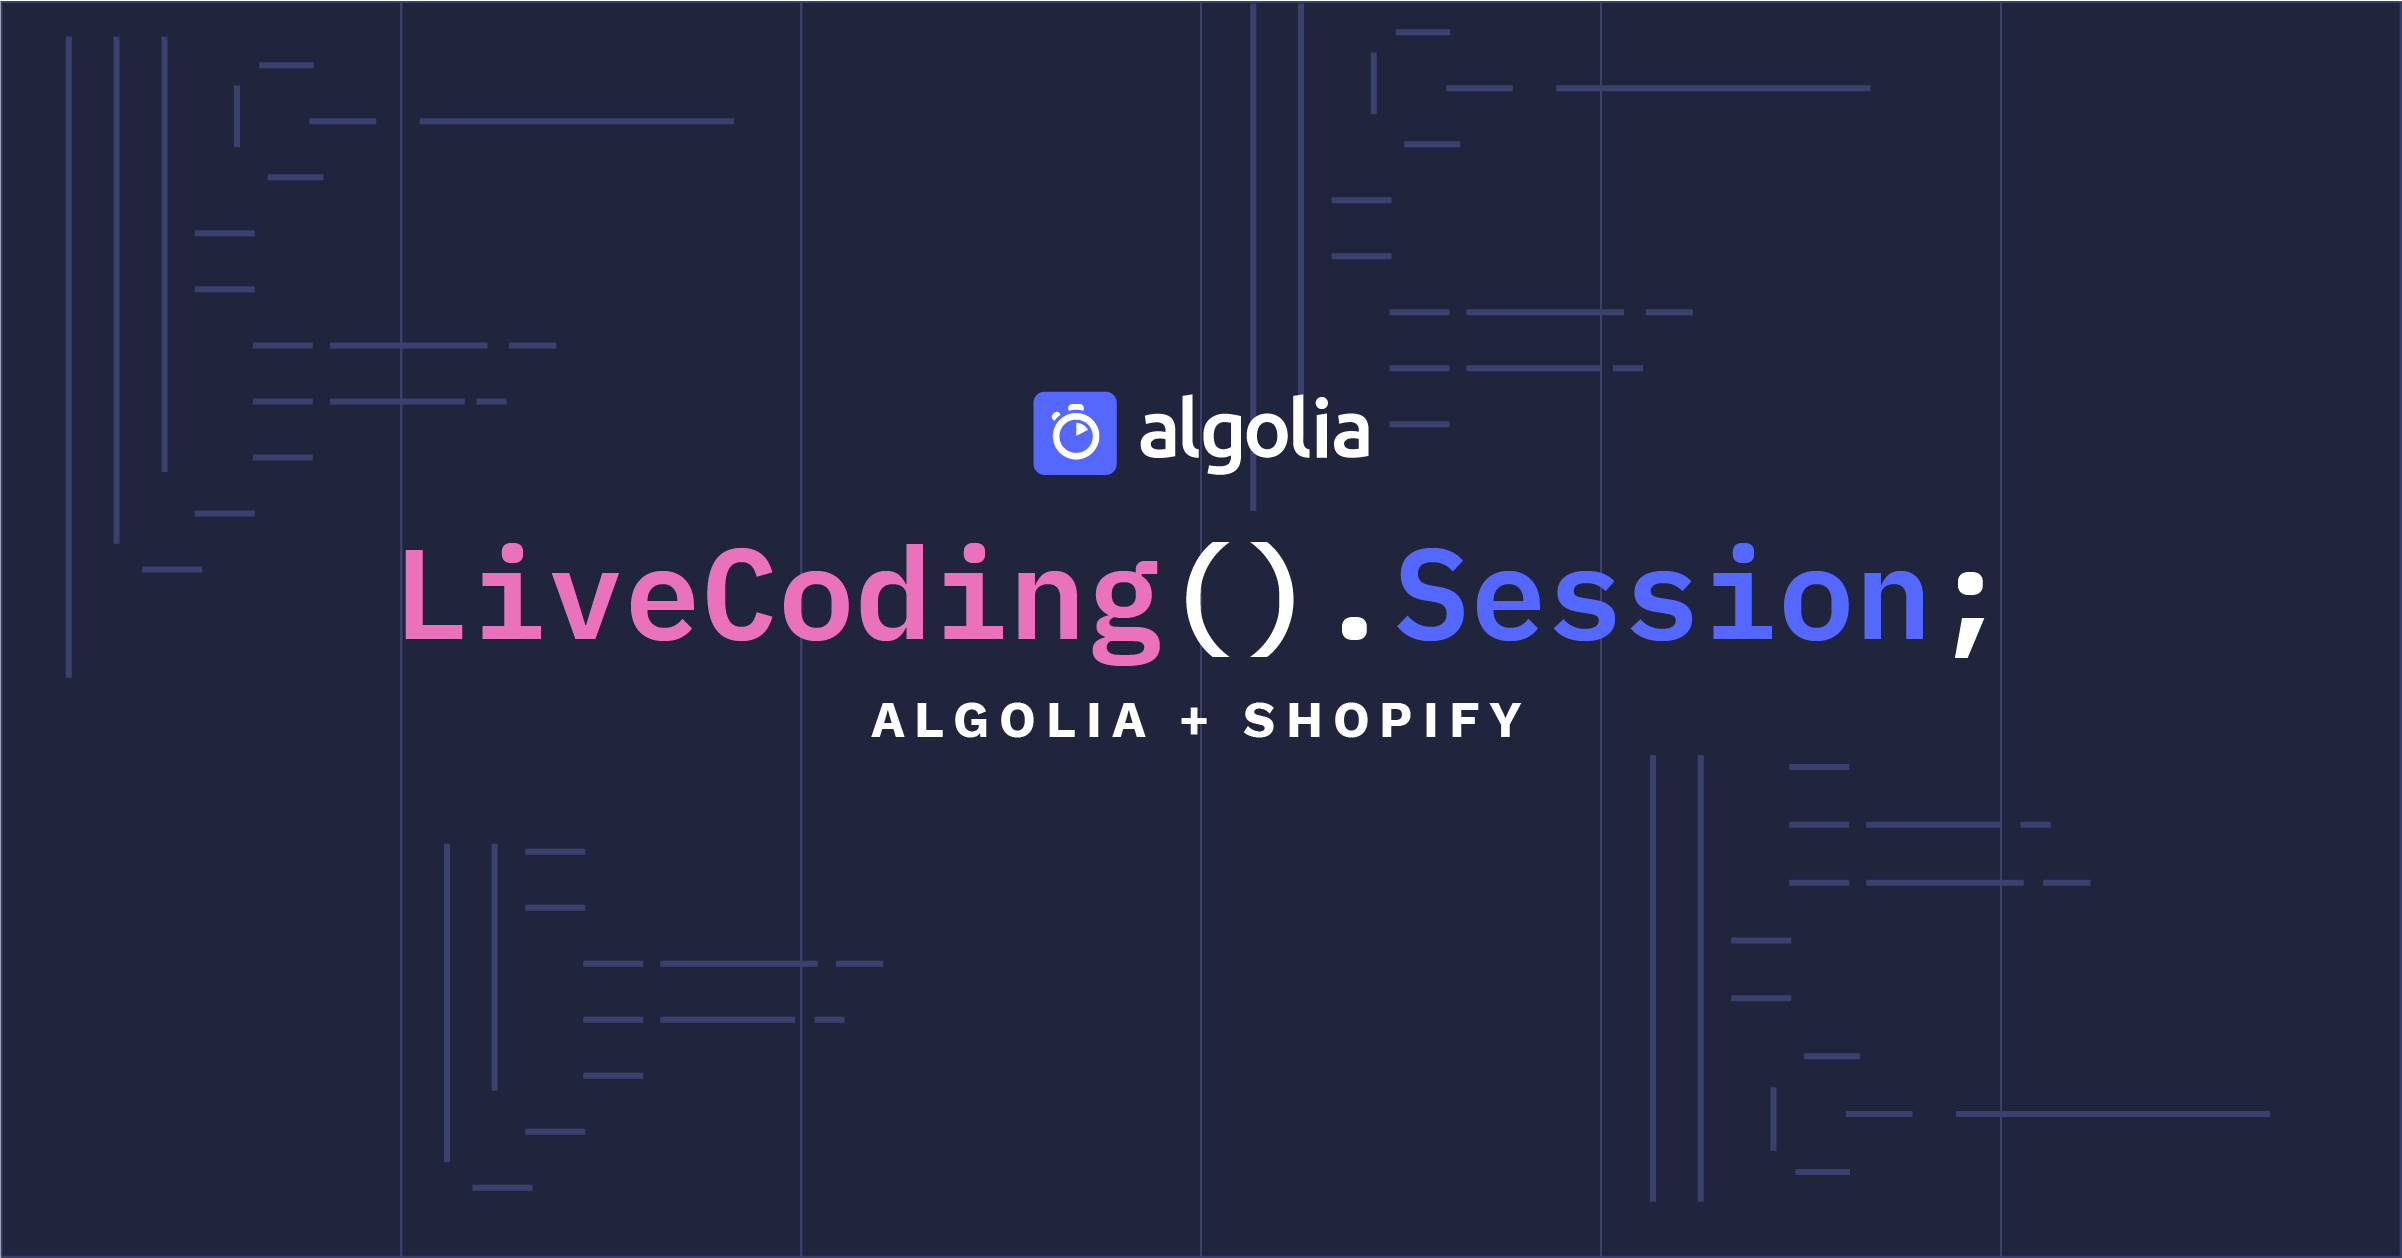 Image for LiveCoding Session: Algolia + Shopify